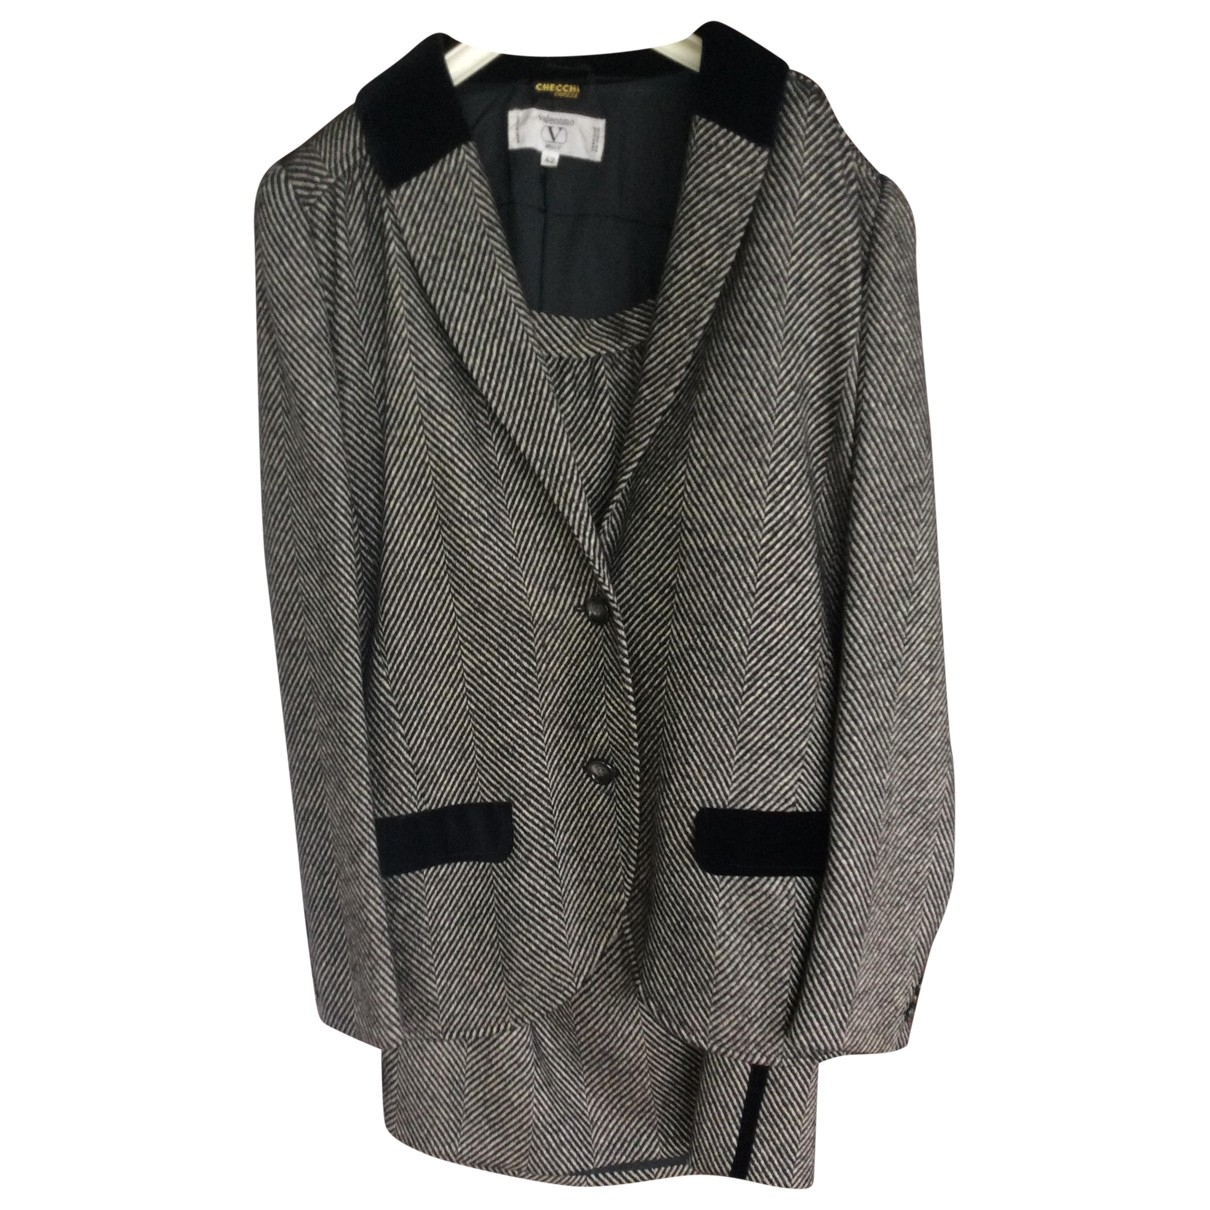 Valentino Garavani \N Black Wool jacket for Women 42 IT